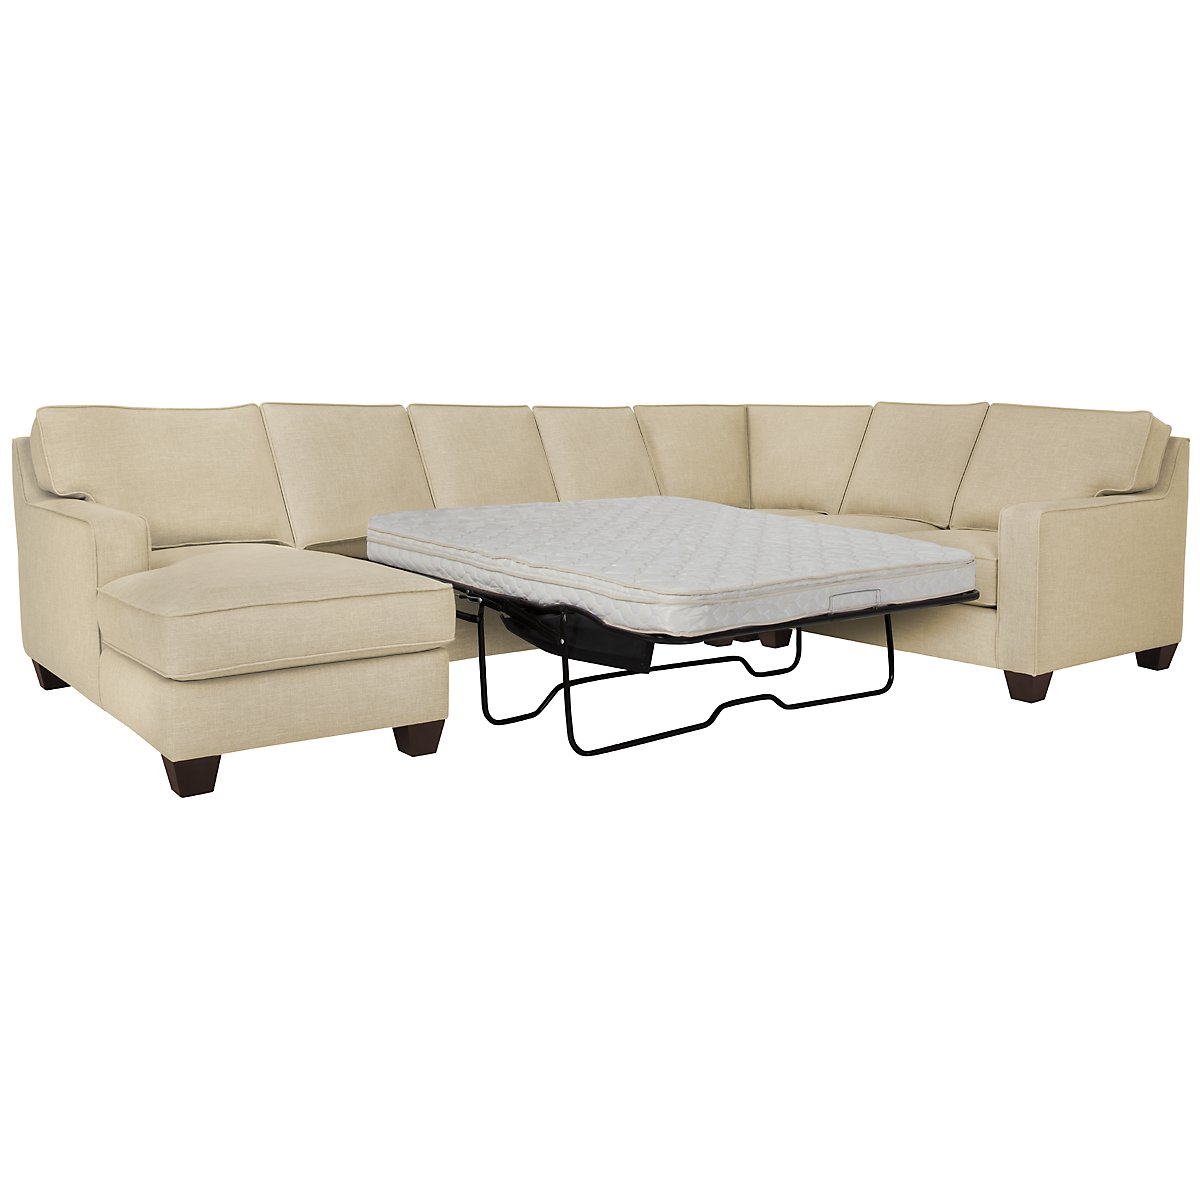 City furniture york beige fabric left chaise innerspring for Beige sectional with chaise